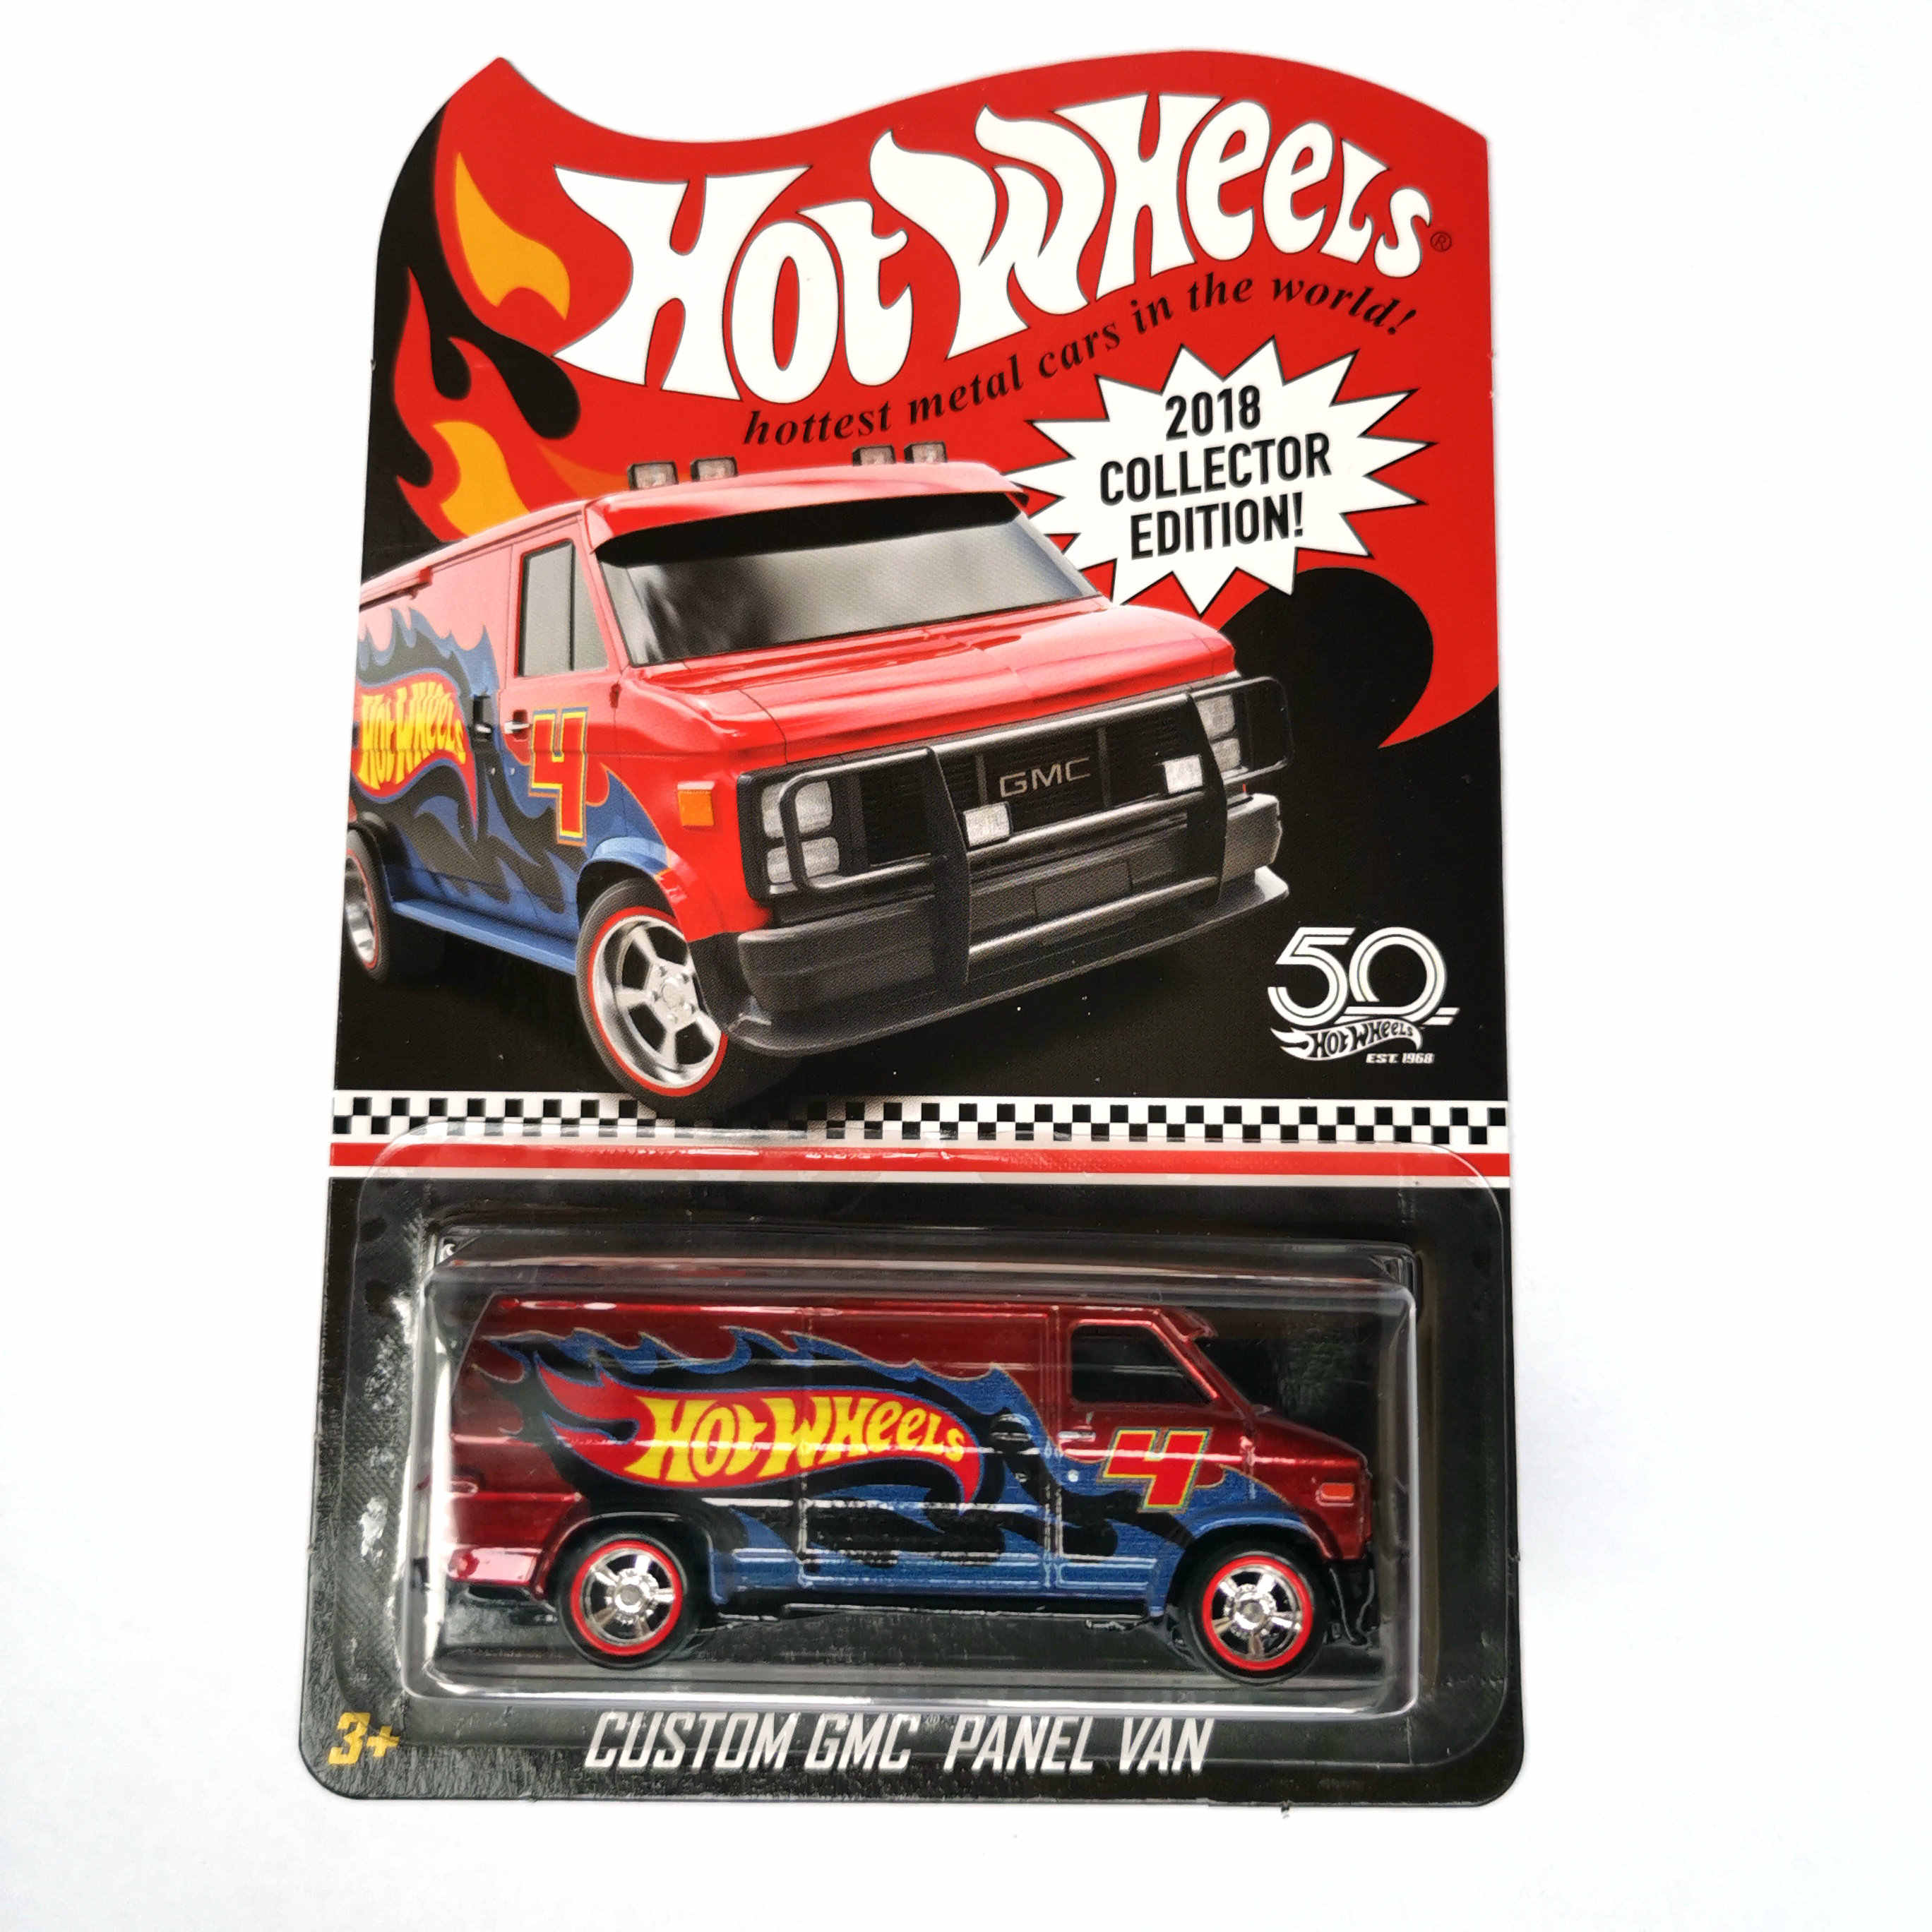 Hot Wheels Mobil Merah Garis Klub 70 Chevy Blazer GMC Chevelle Kolektor Edition 50th Anniversary Logam Diecast Model Mobil Anak-anak mainan